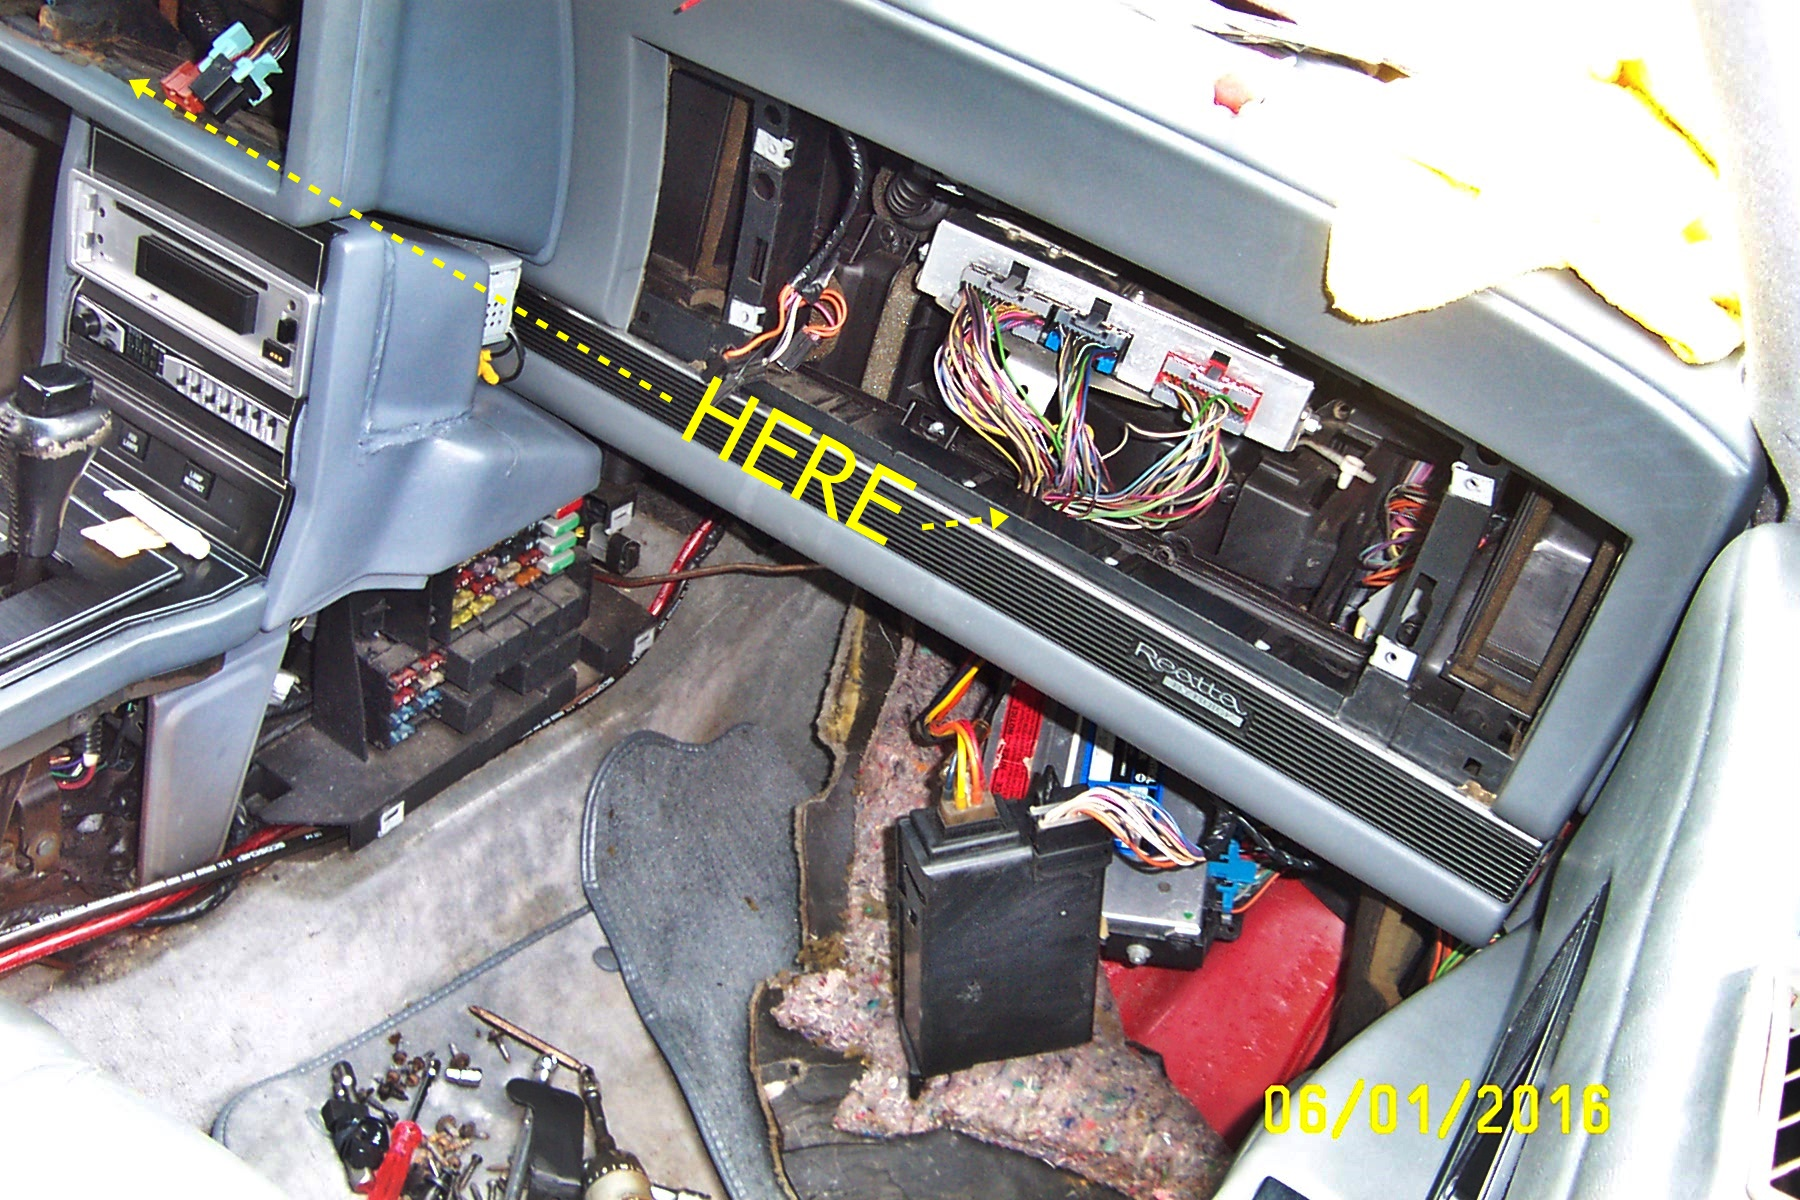 1989 Buick Reatta Fuse Box   Wiring Diagram on buick reatta door diagram, buick lesabre fuse box diagram, buick rendezvous fuse box diagram, buick enclave fuse box diagram, buick roadmaster fuse box diagram, buick century fuse box diagram,